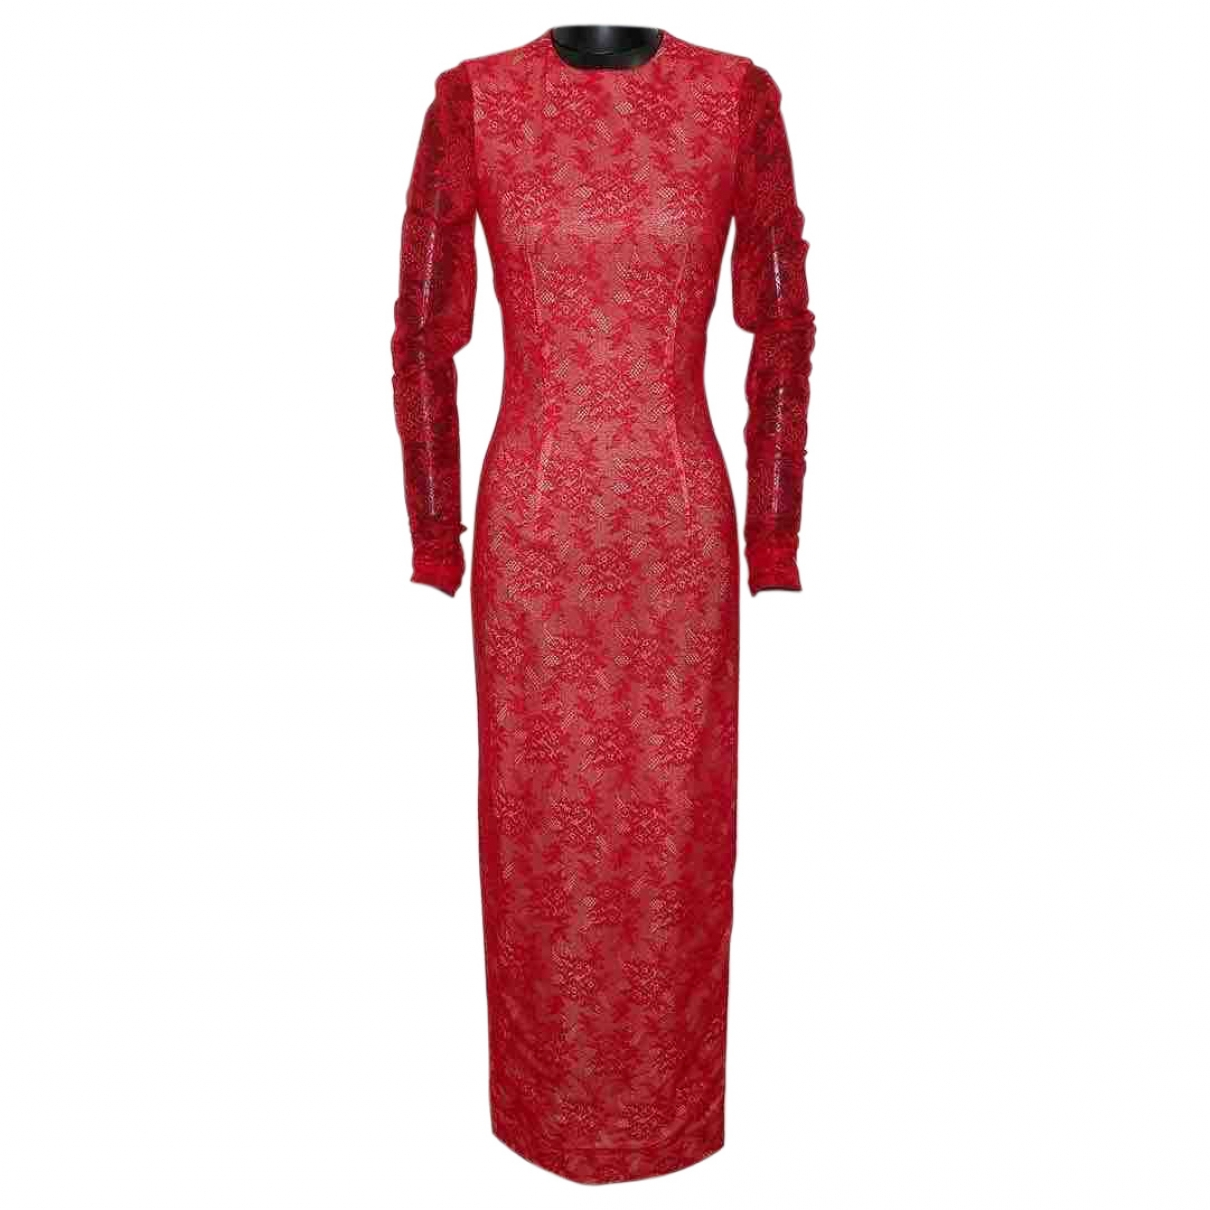 Alessandra Rich \N Red Lace dress for Women S International